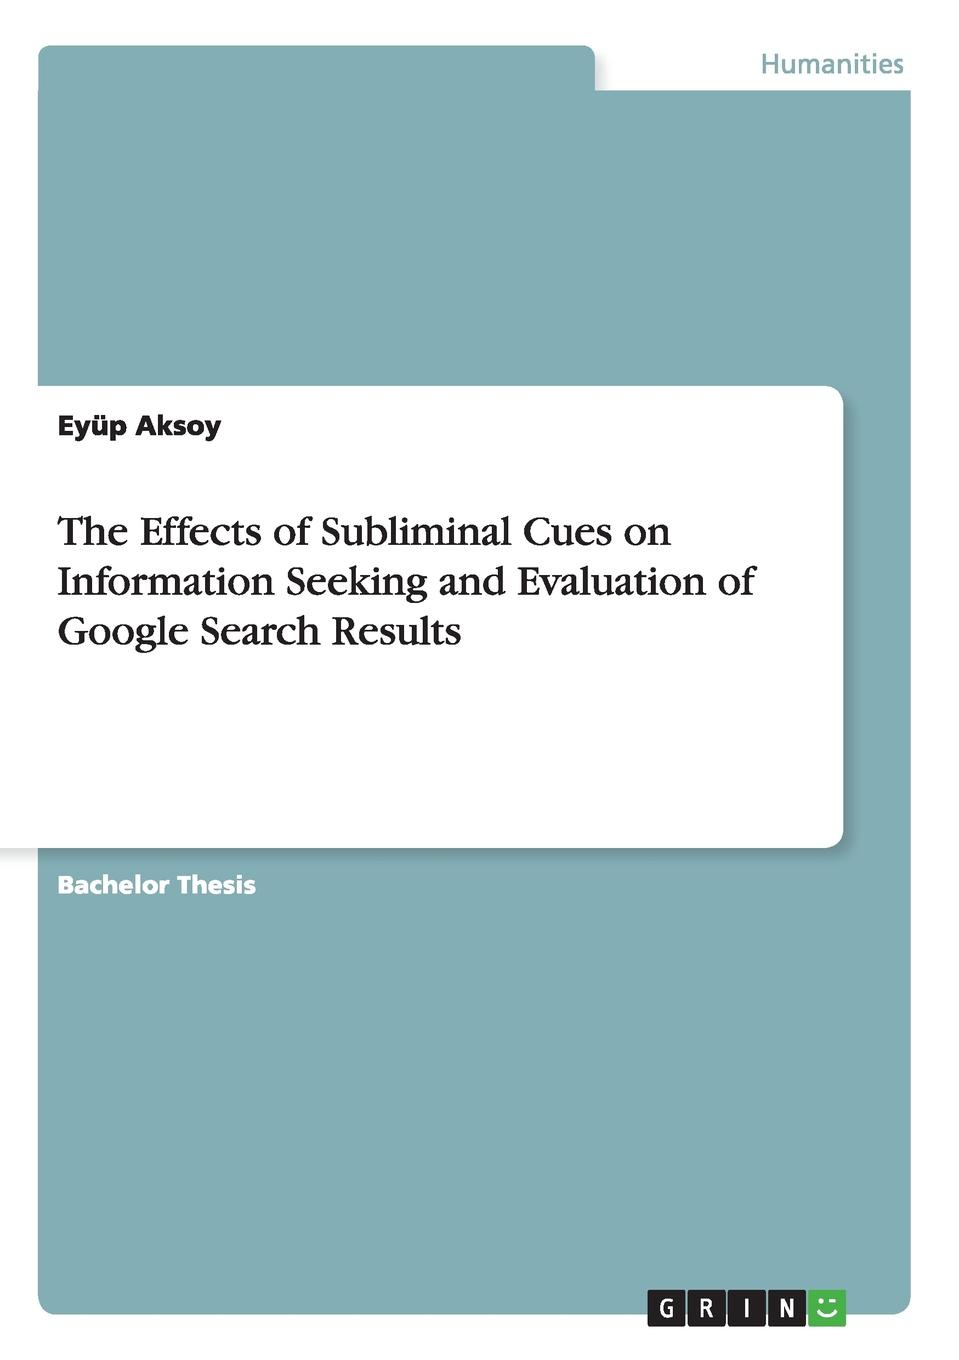 Eyüp Aksoy The Effects of Subliminal Cues on Information Seeking and Evaluation of Google Search Results serelec search engines result refinement and classificaion